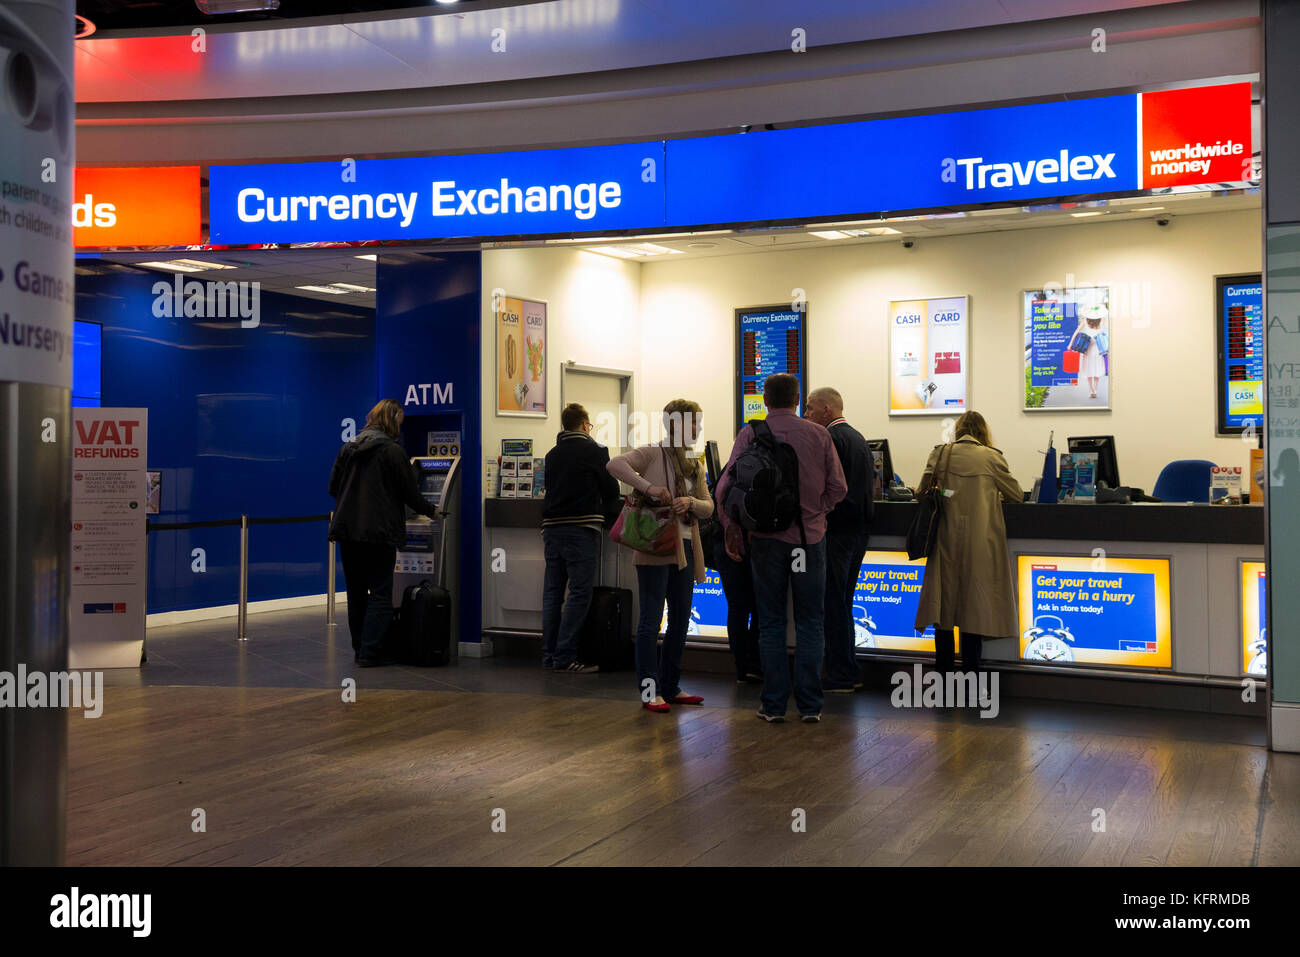 Travelex Stock Photos Travelex Stock Images Alamy